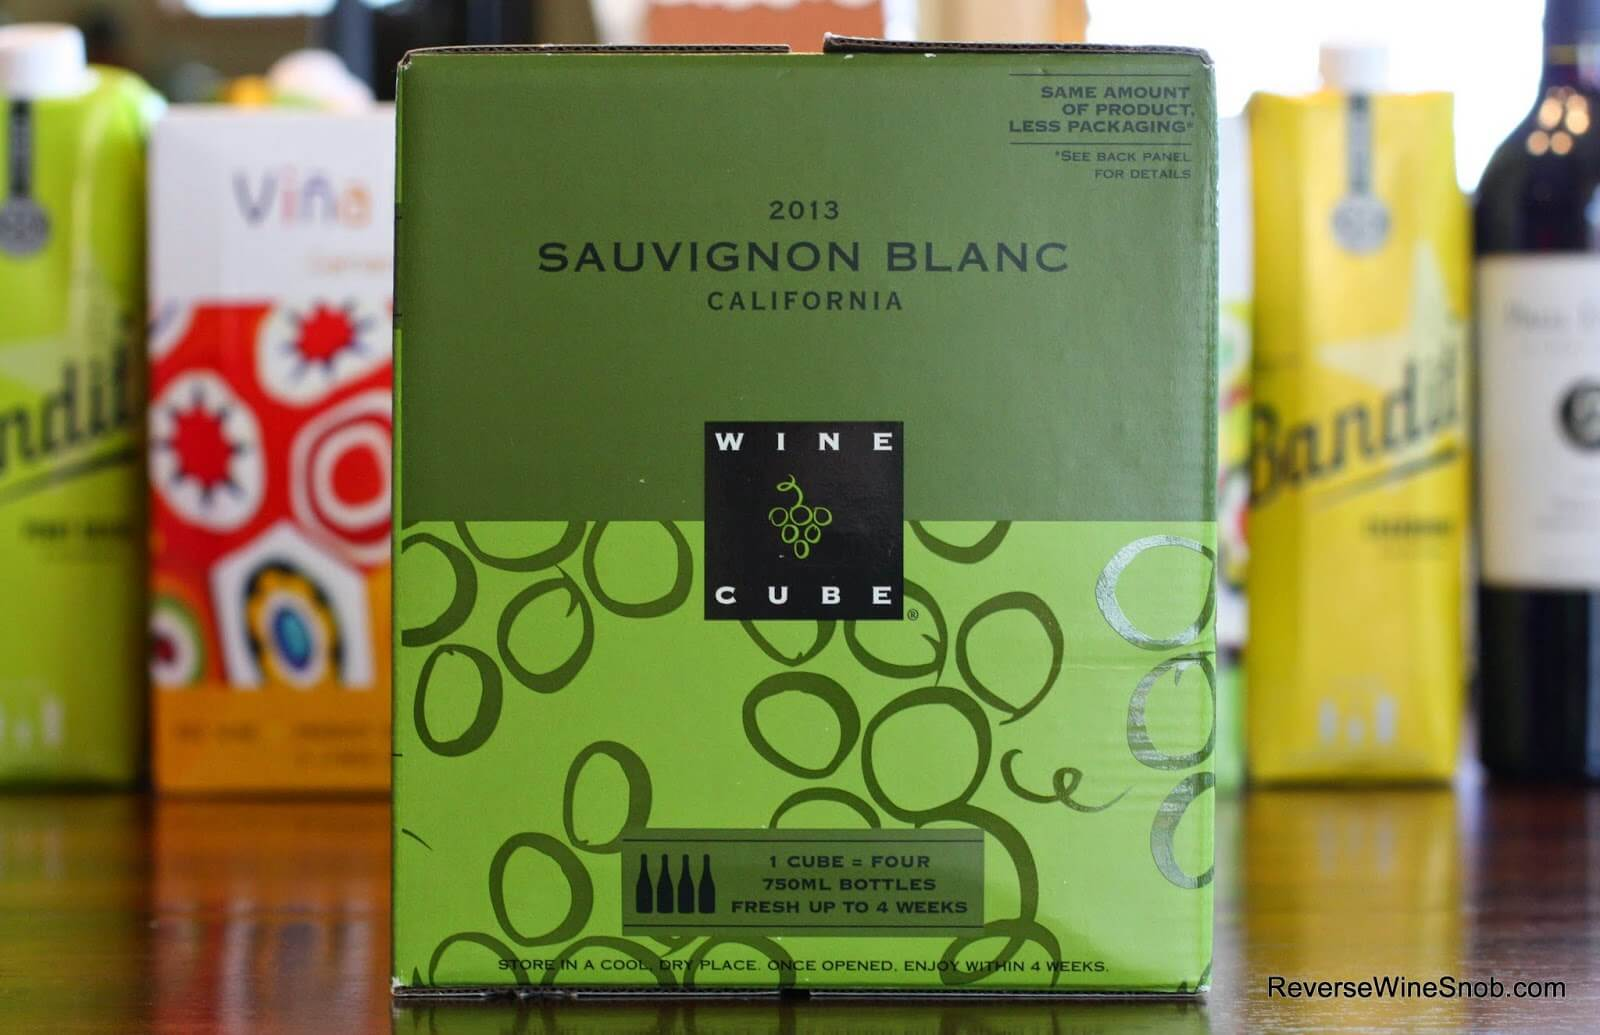 The Best Box Wines Target Wine Cube Sauvignon Blanc And